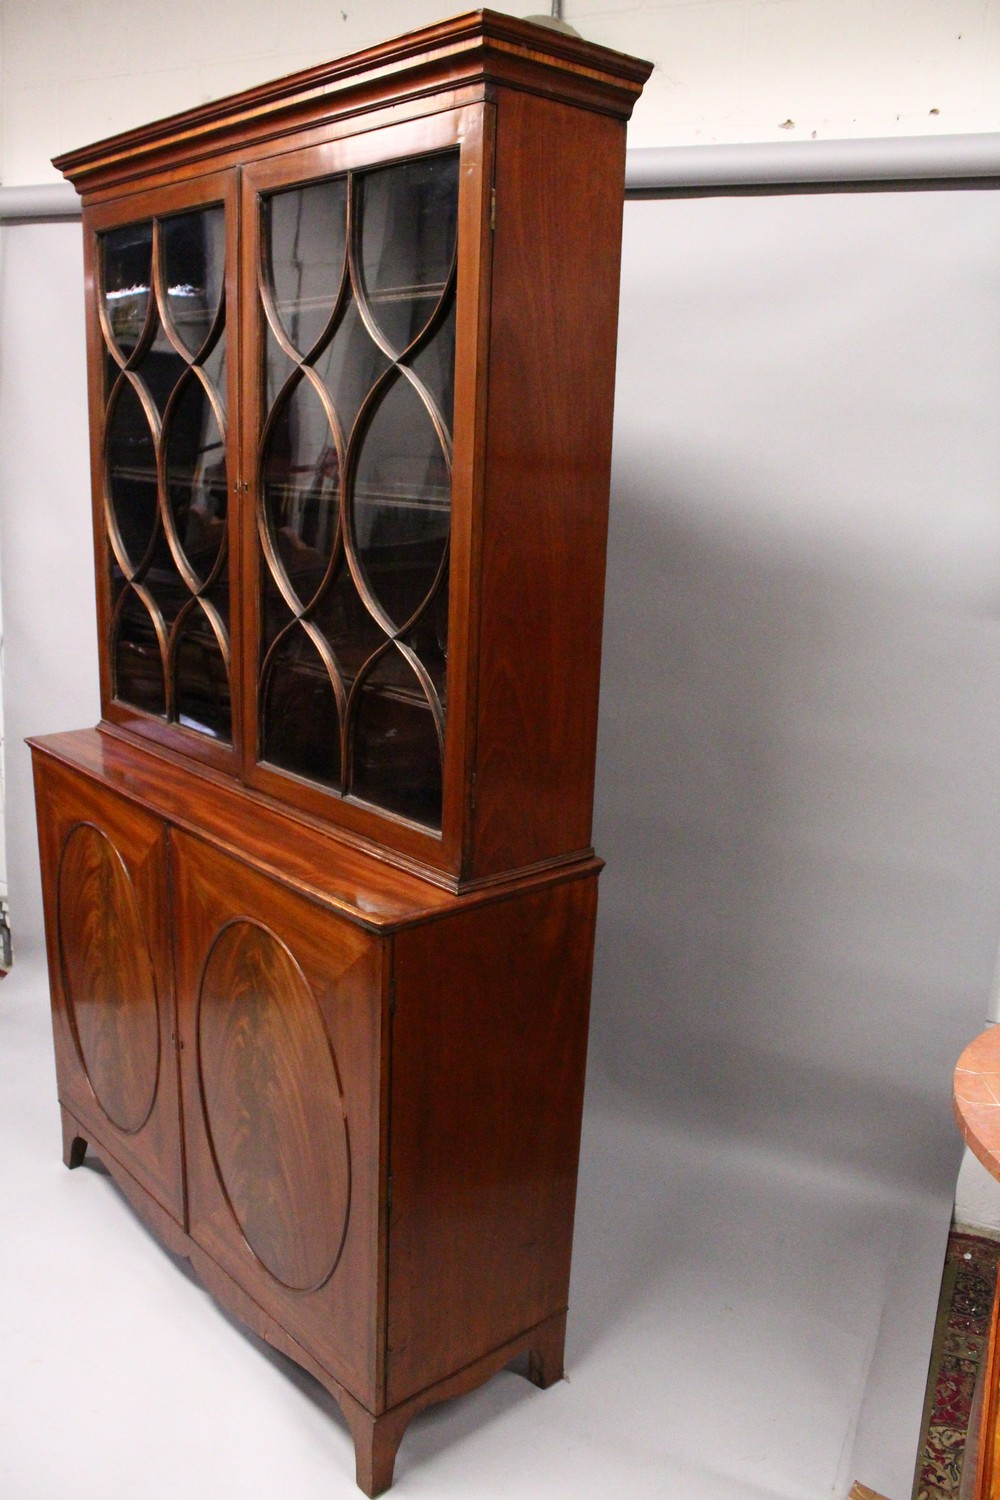 A GEORGE III DESIGN MAHOGANY CUPBOARD BOOKCASE, 19TH CENTURY, with a moulded cornice, pair of - Image 7 of 10